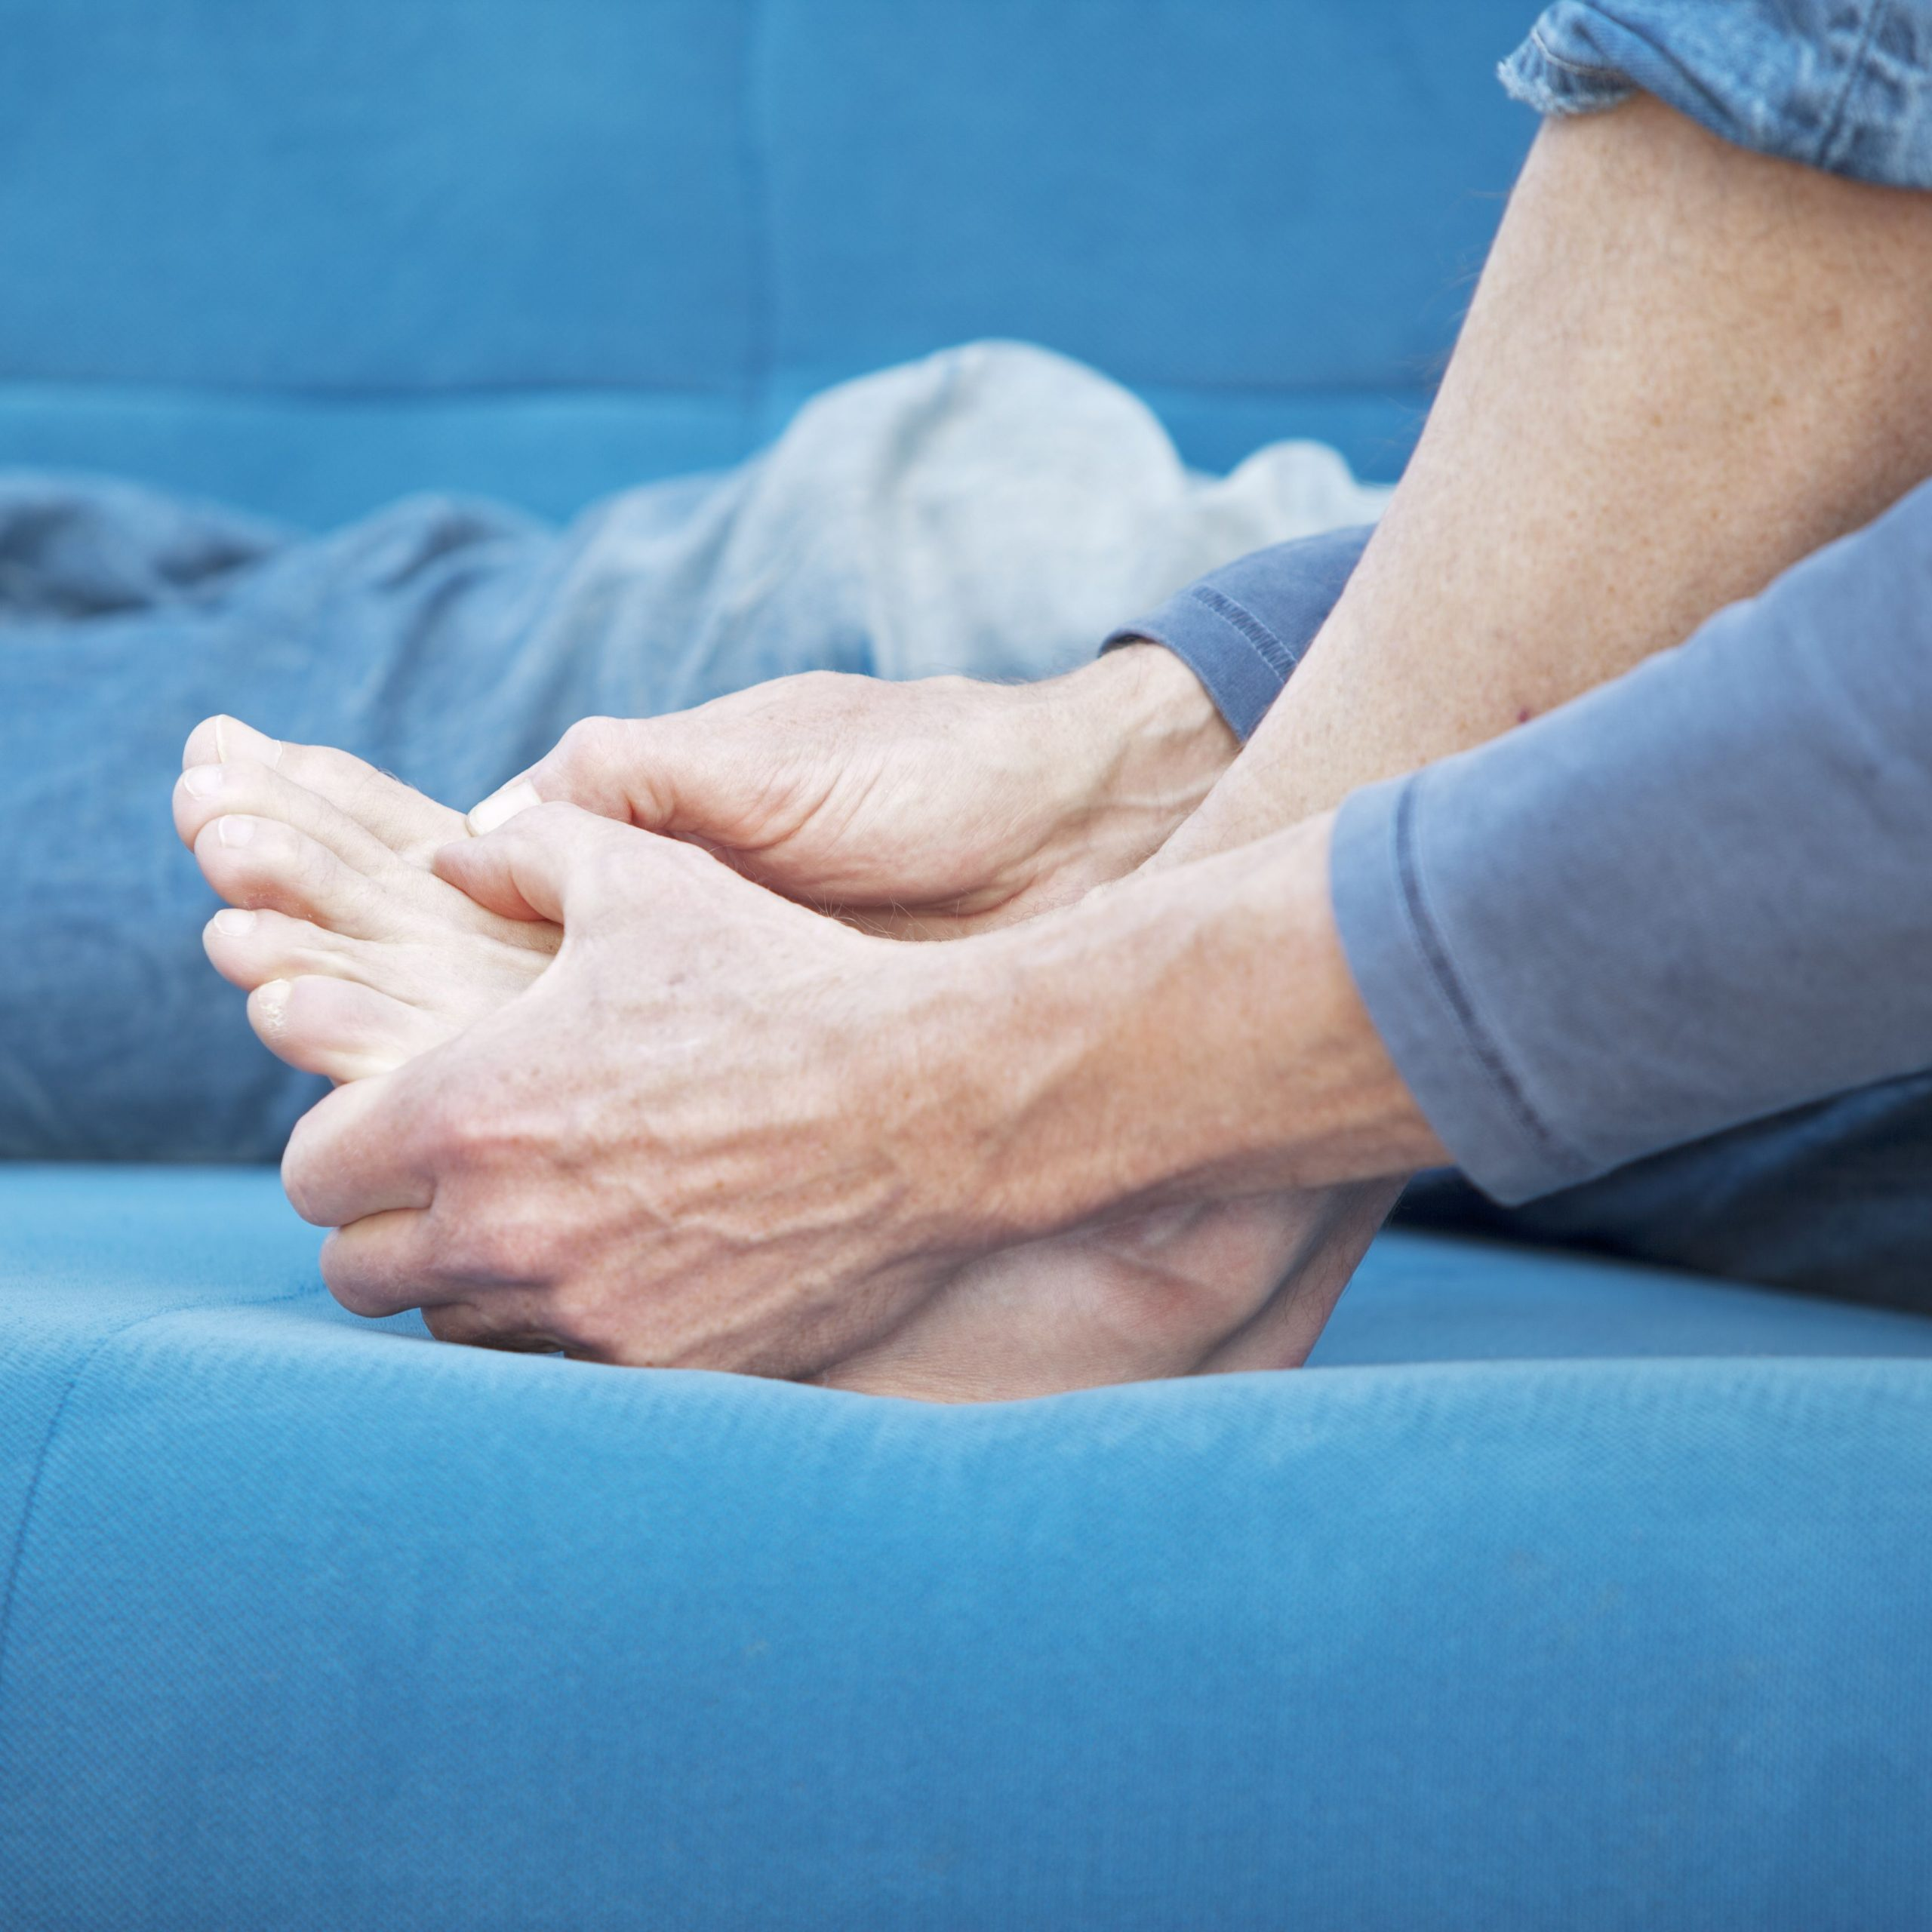 Foot tendon pain treatment begins with a diagnosis. Cramping Your Style: Causes Of Foot Cramps - Palmetto ...